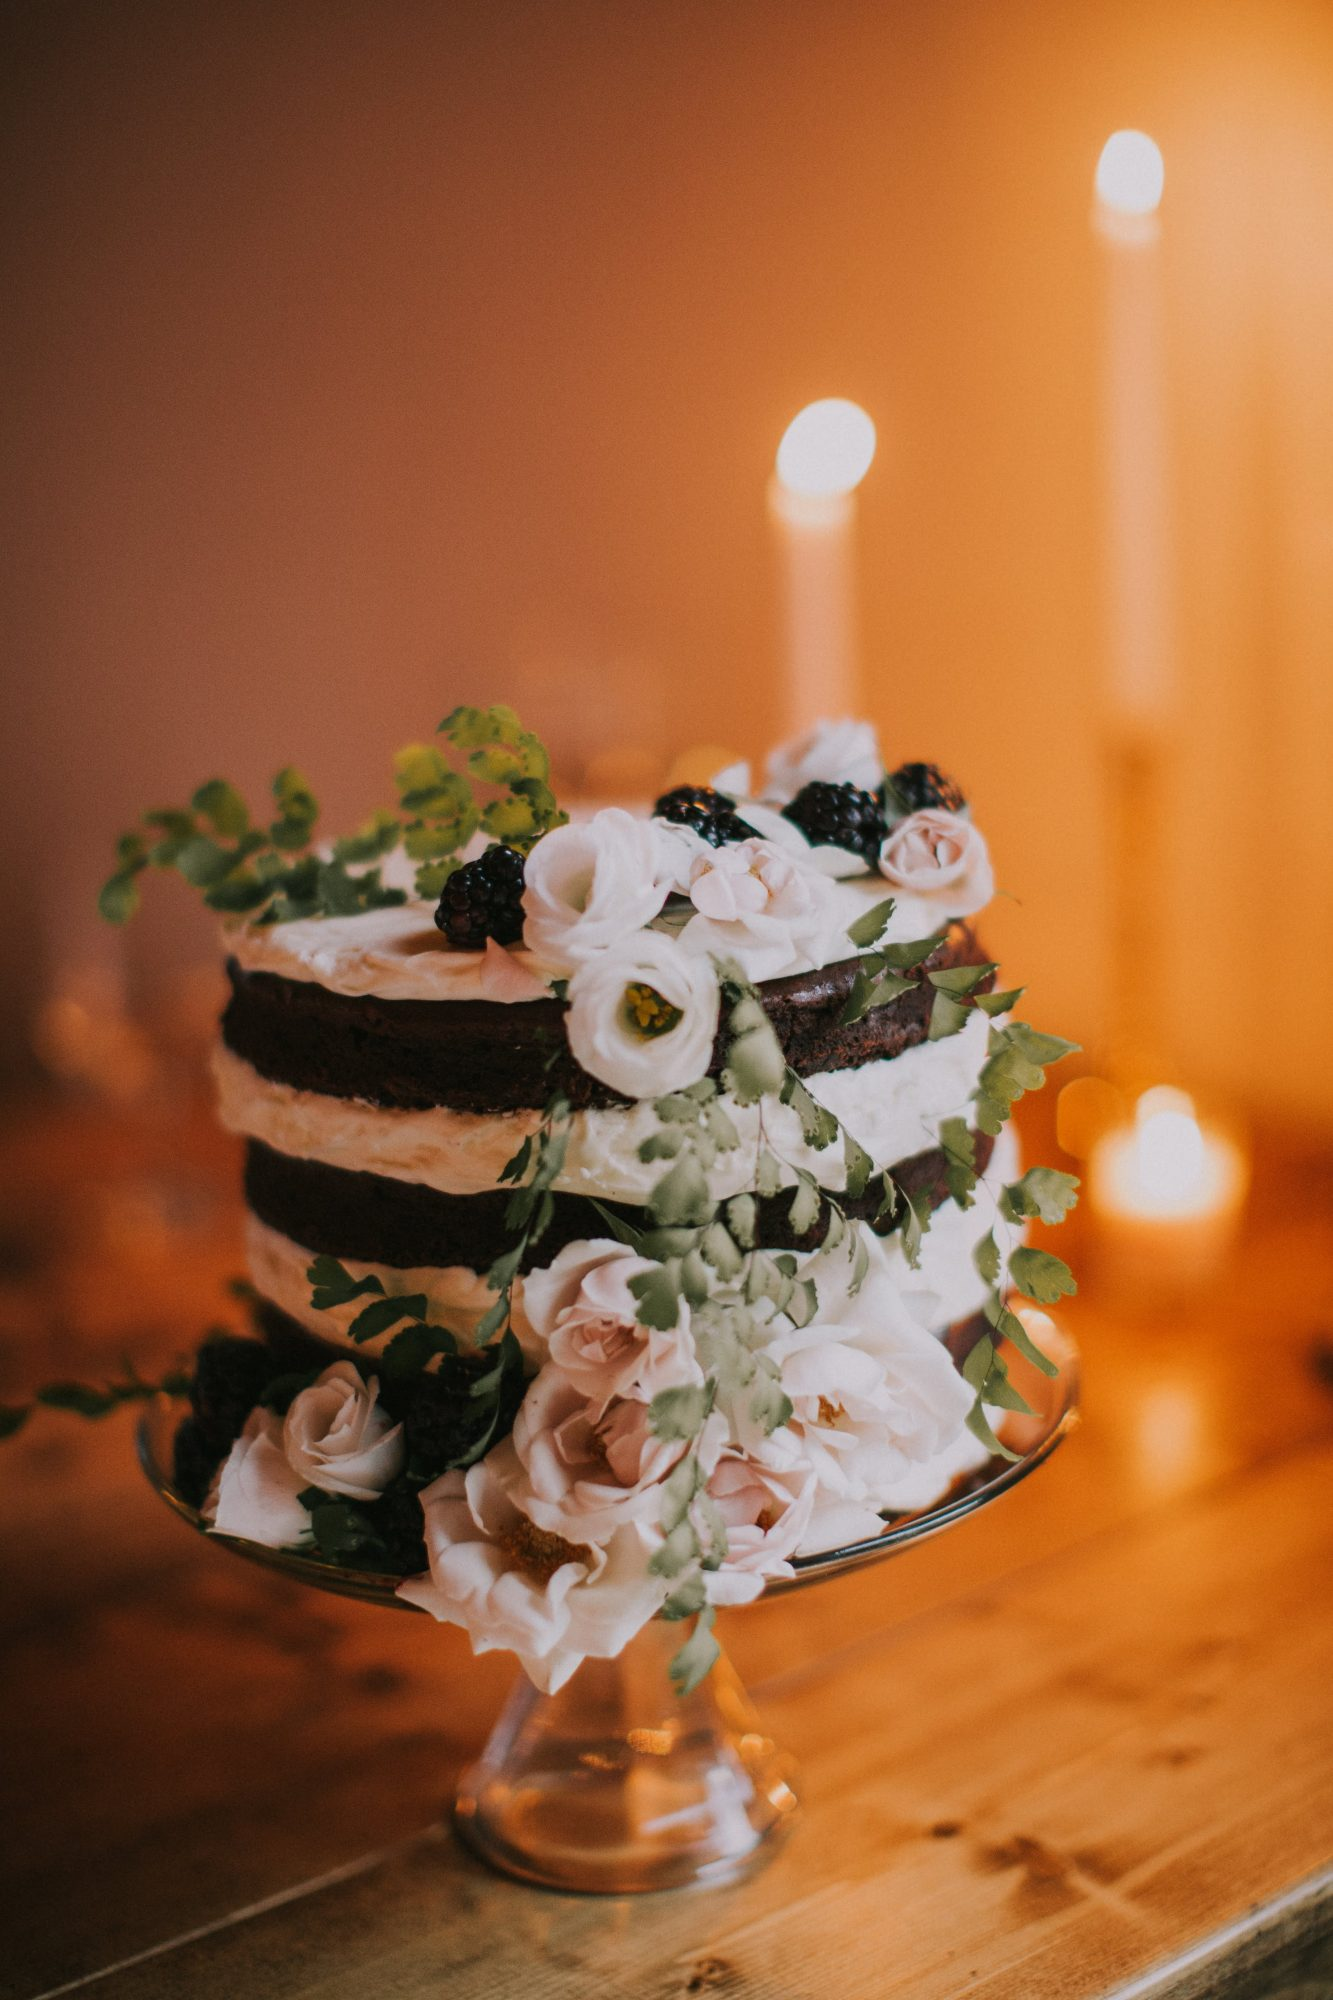 A Small, Naked Cake